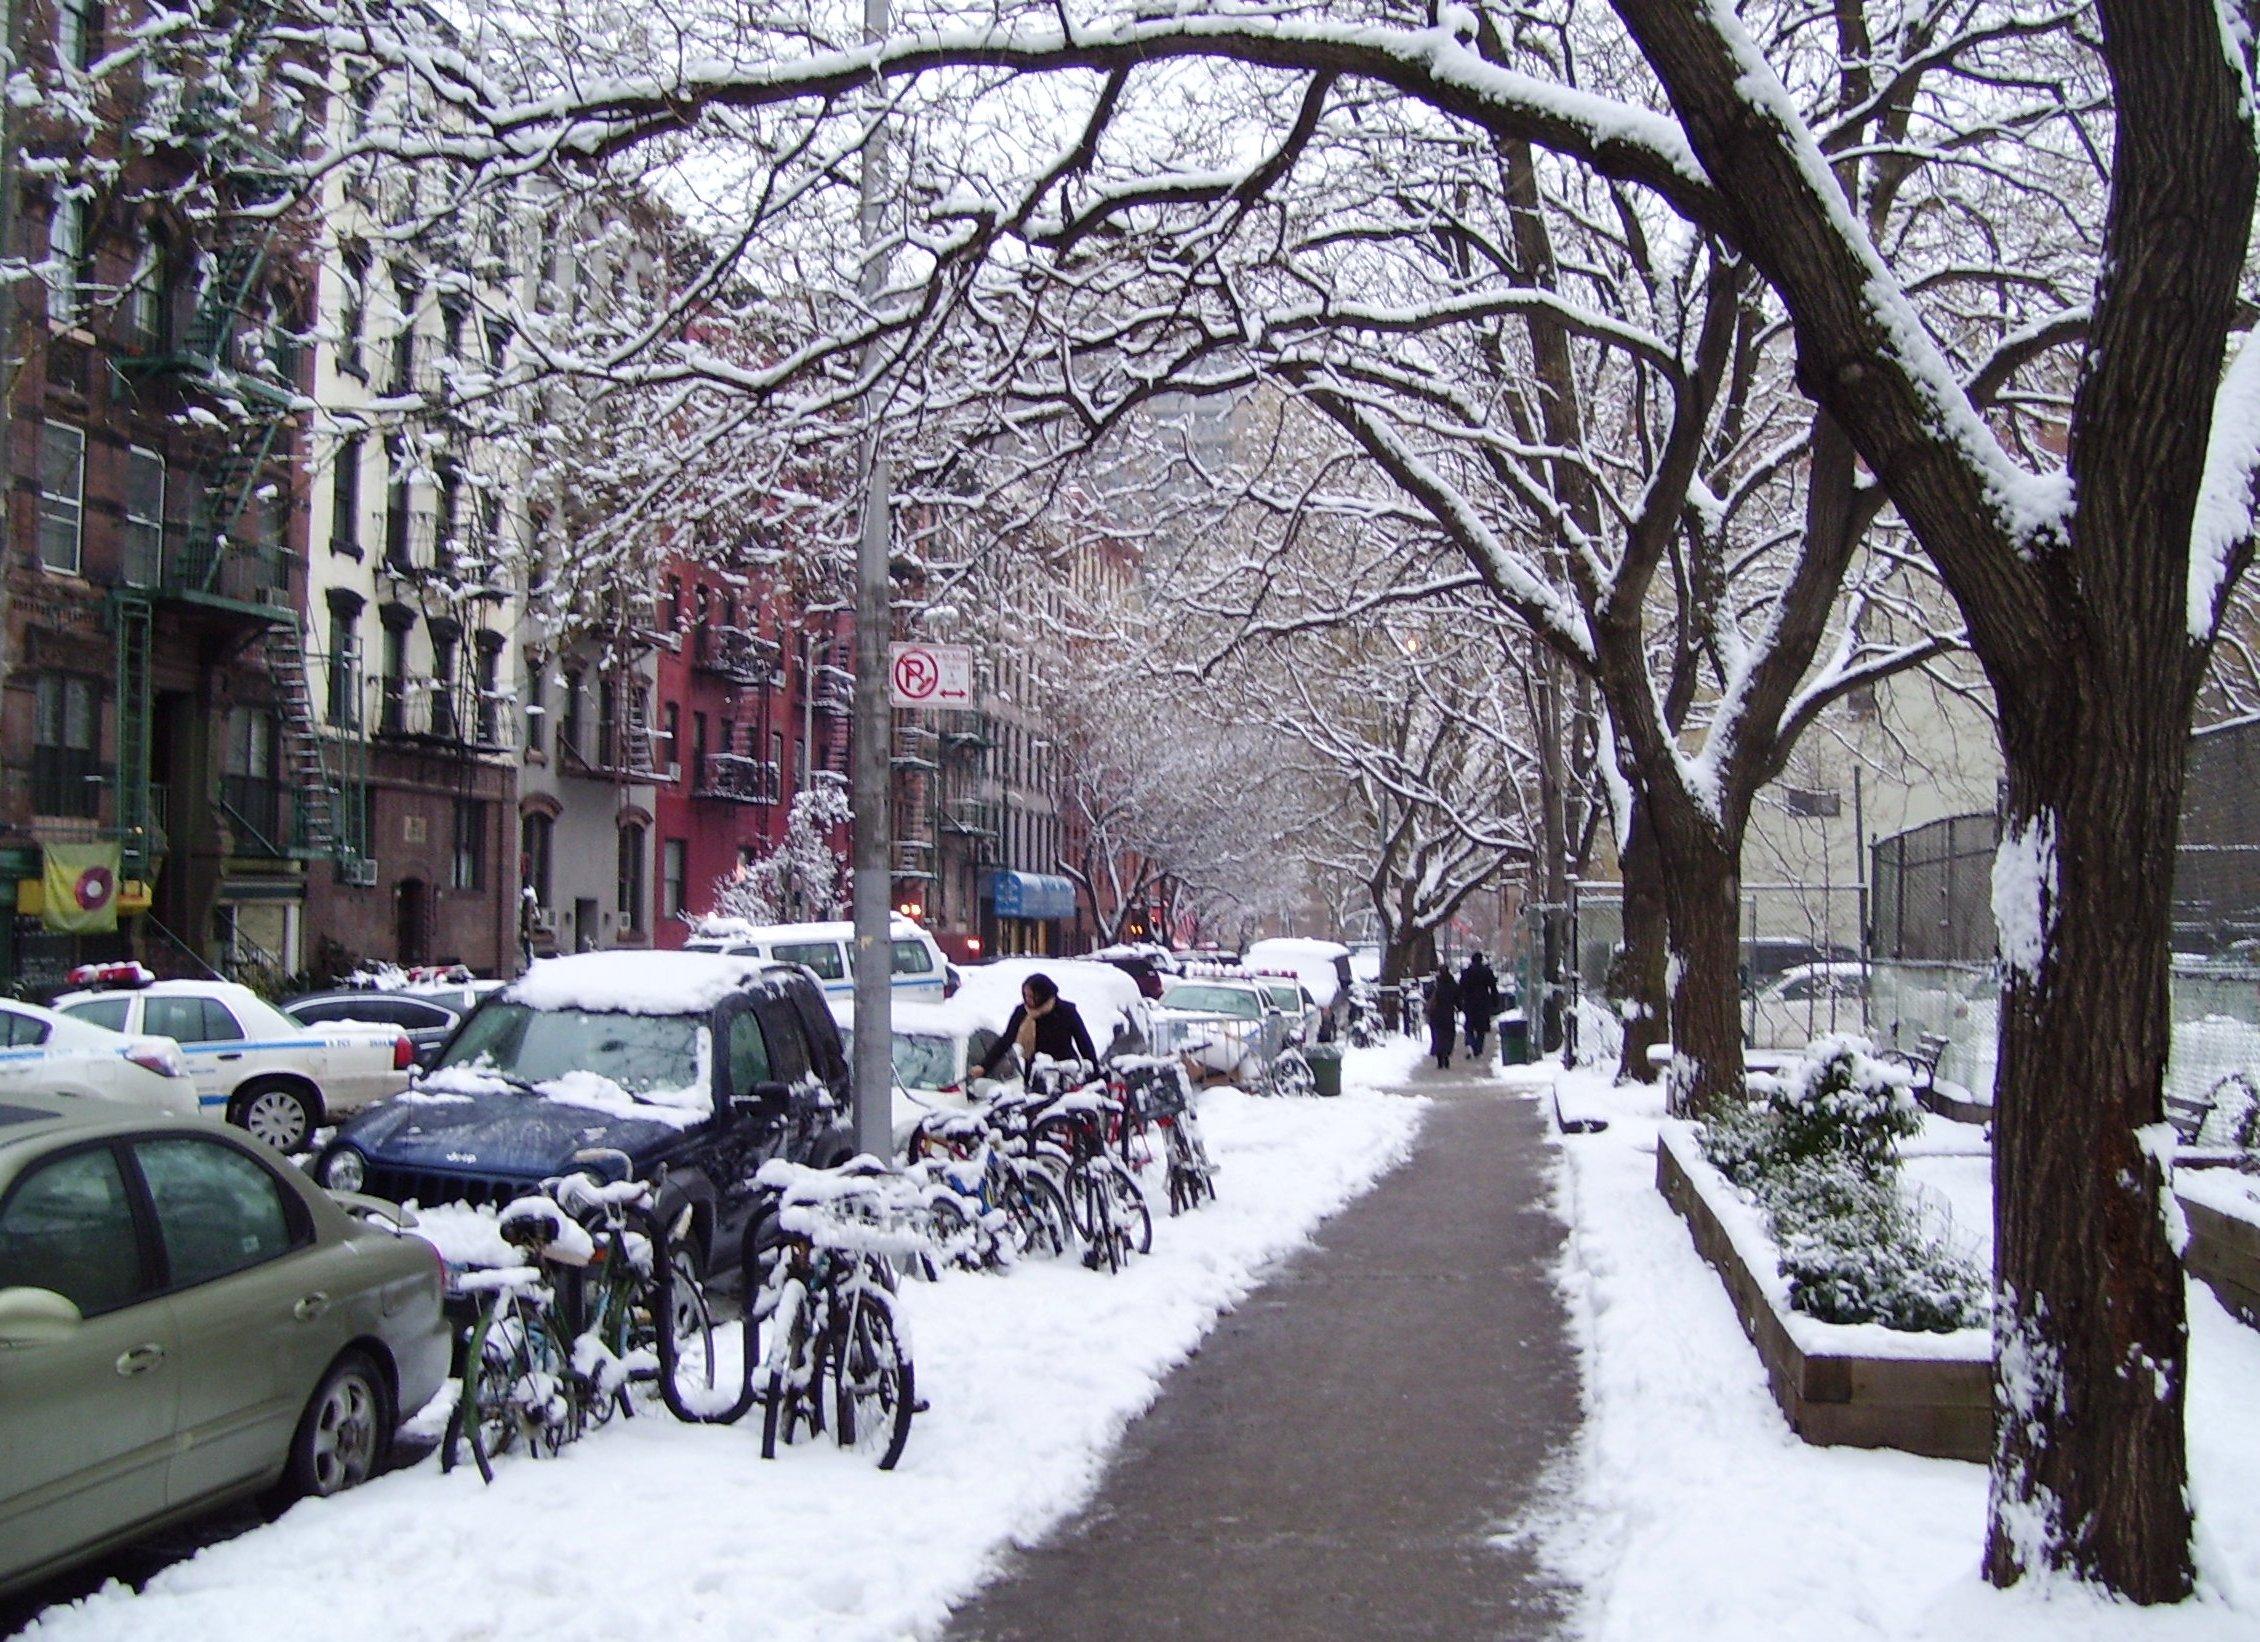 East 5th Street in winter